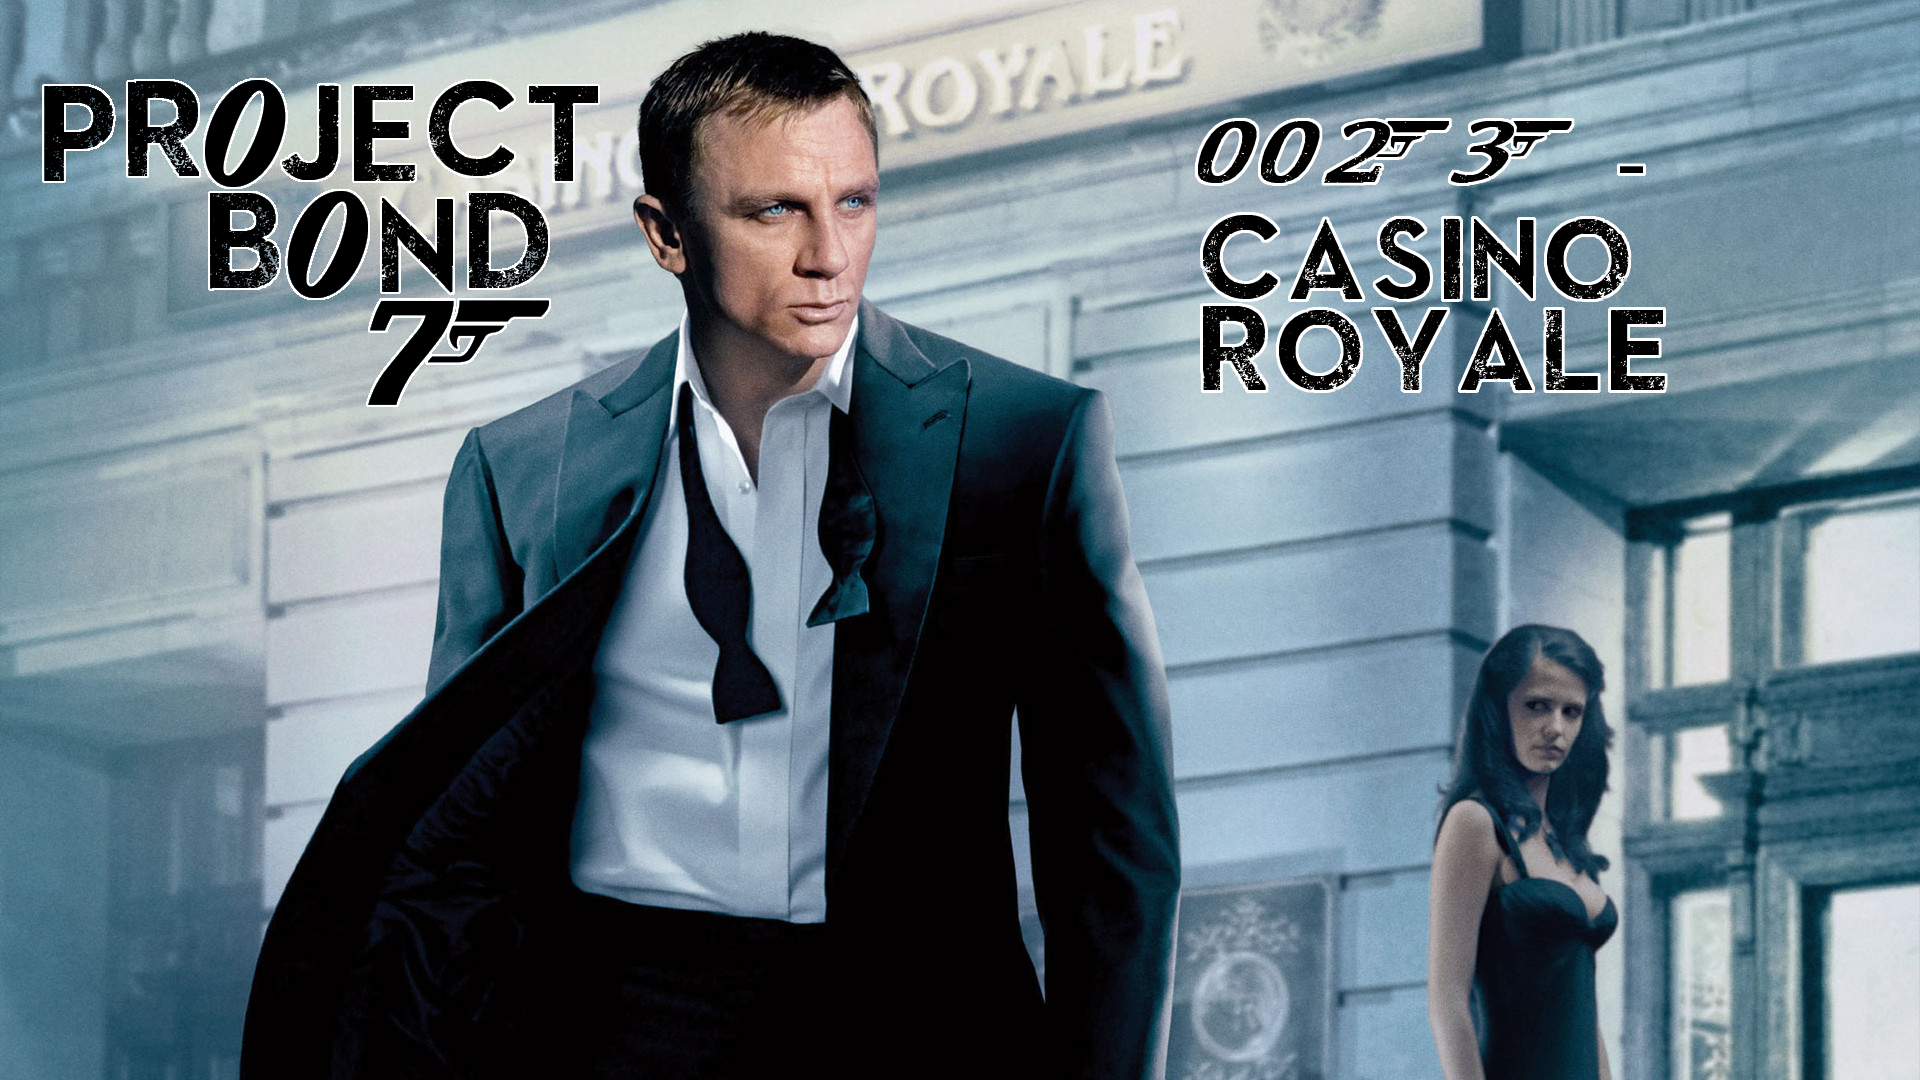 Bond casino contest film royale casino pontiac michigan